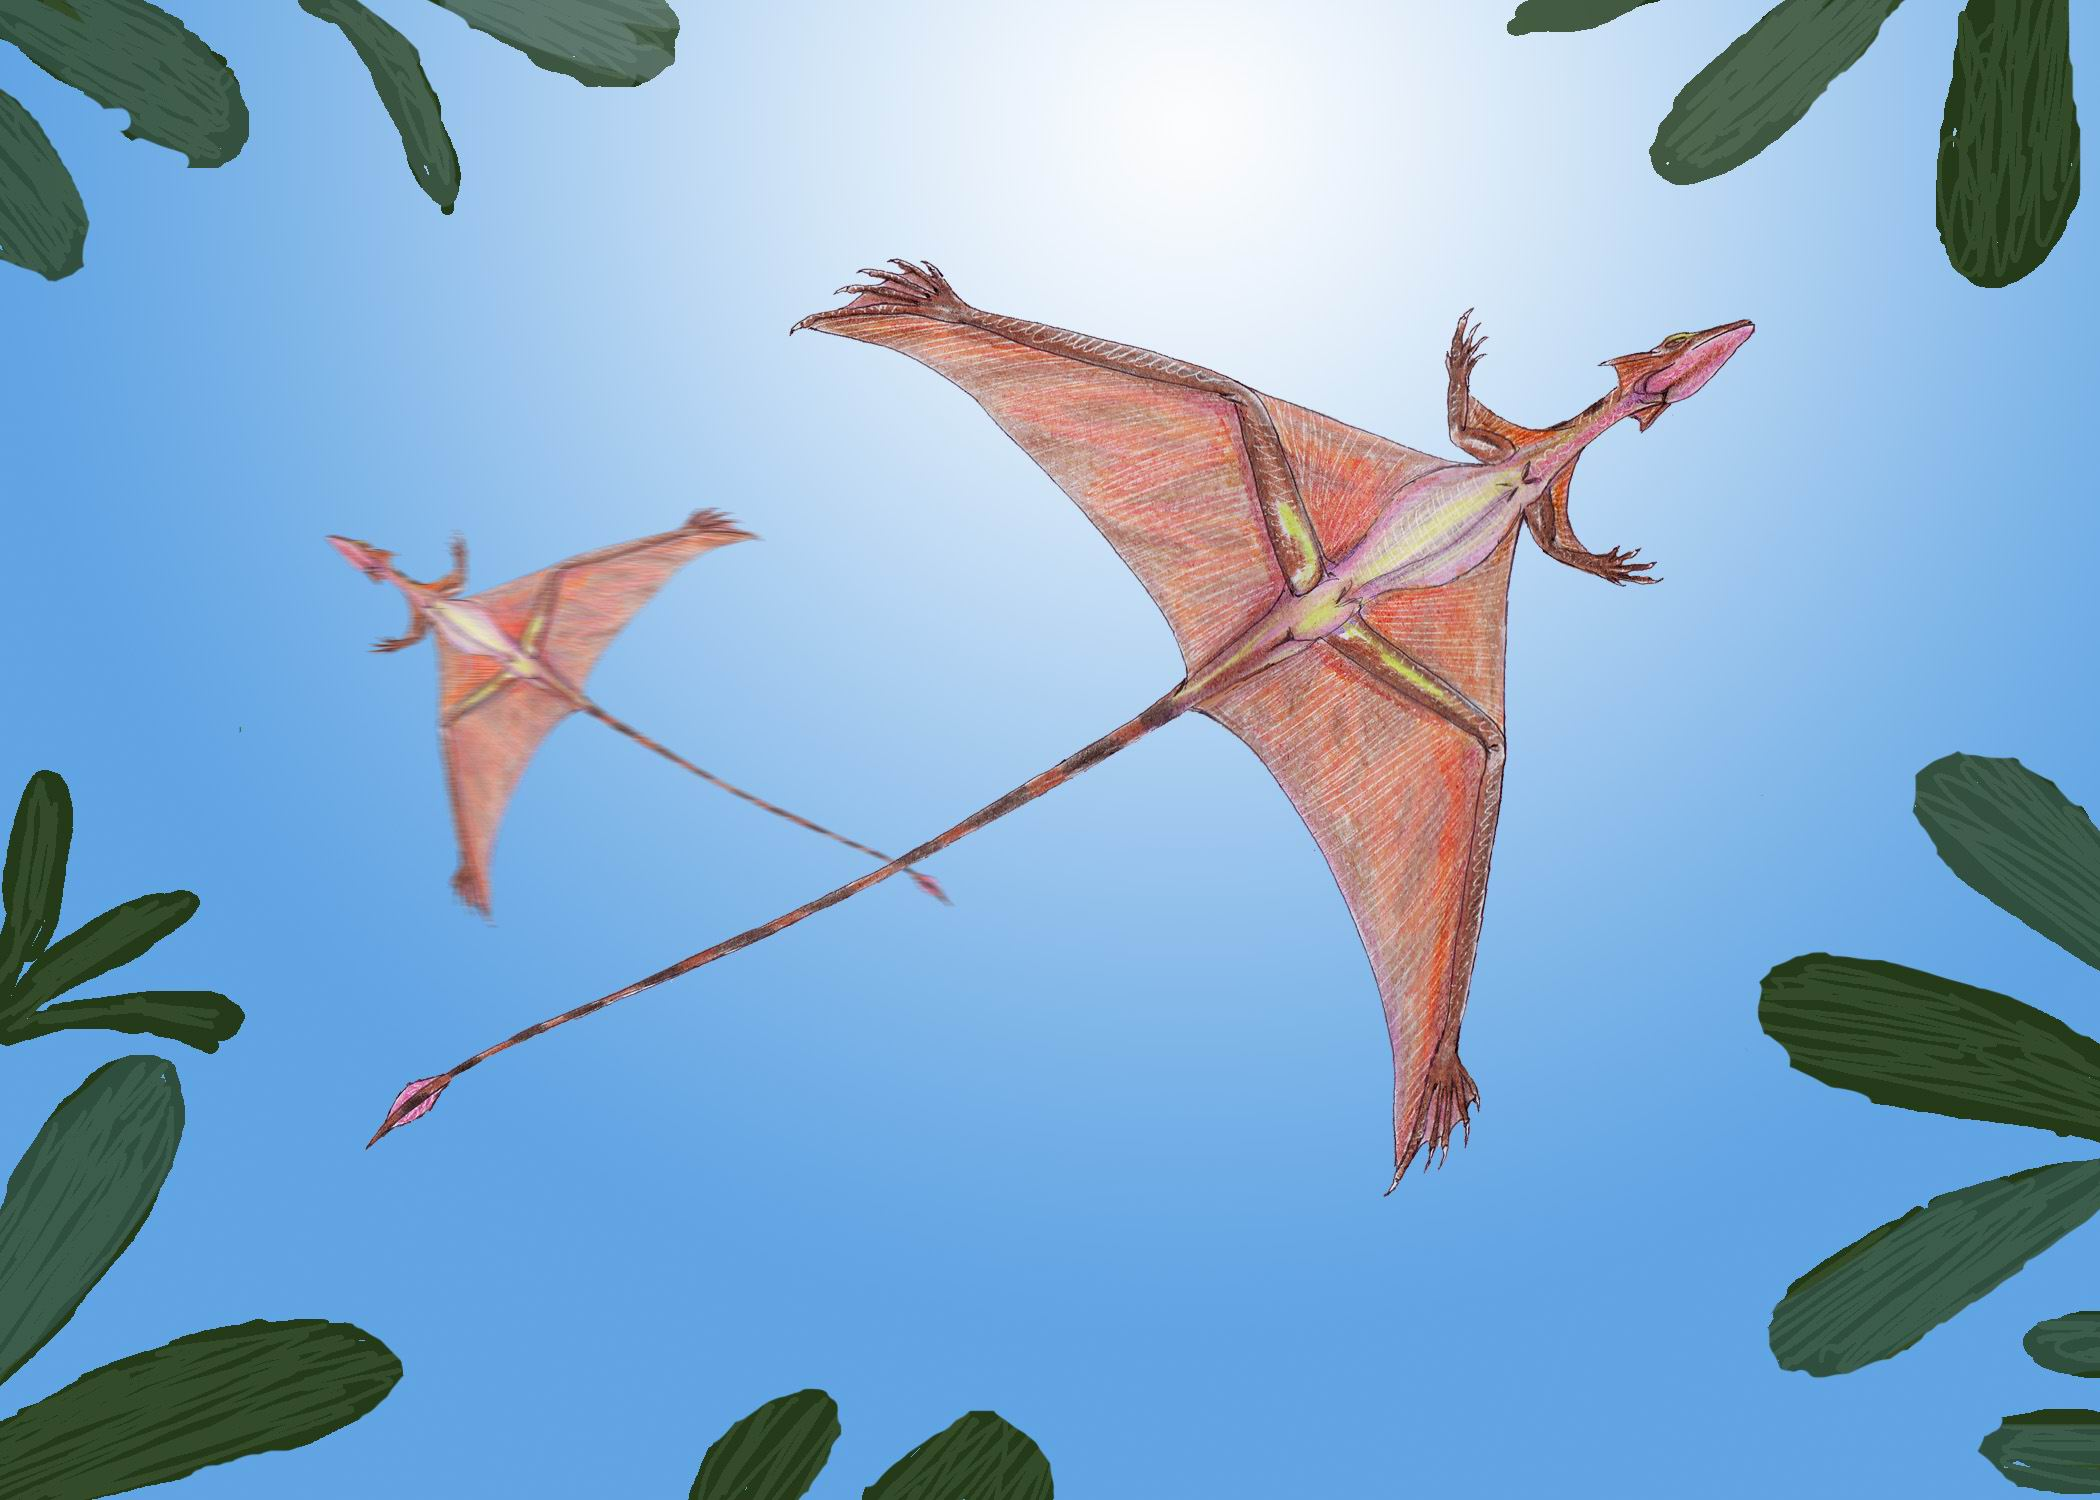 http://upload.wikimedia.org/wikipedia/commons/b/b8/Sharovipteryx.jpg